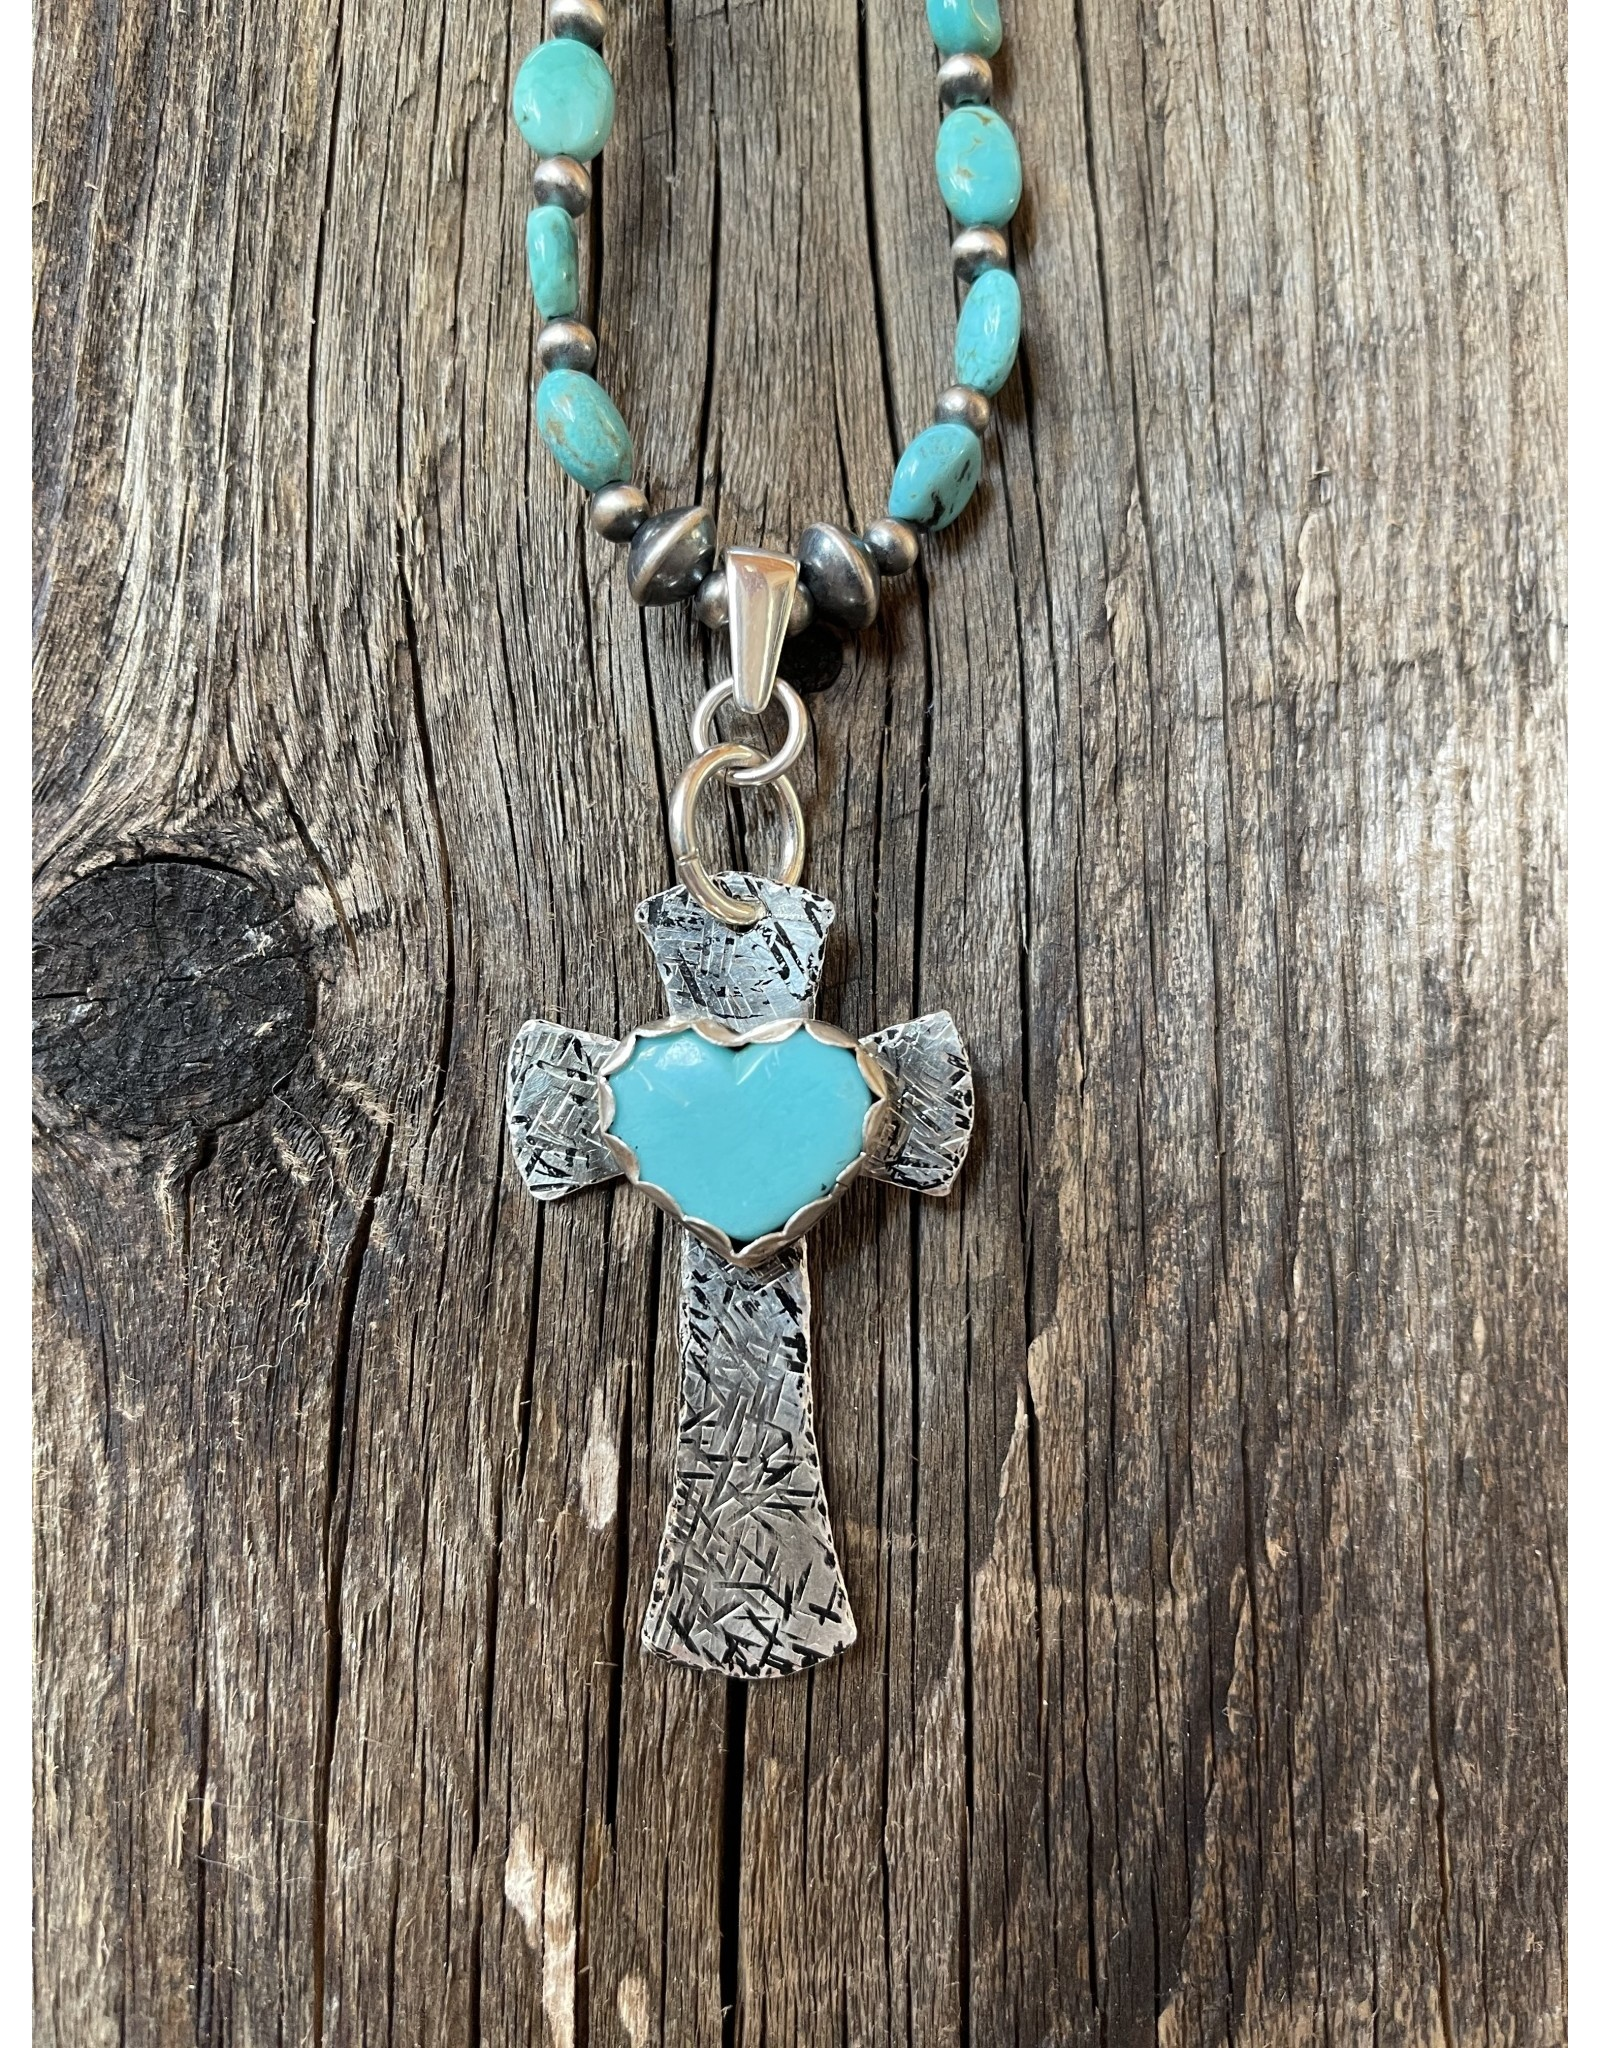 Annette Colby - Jeweler Sterling Silver Cross with Turquoise Heart Necklace by Annette Colby